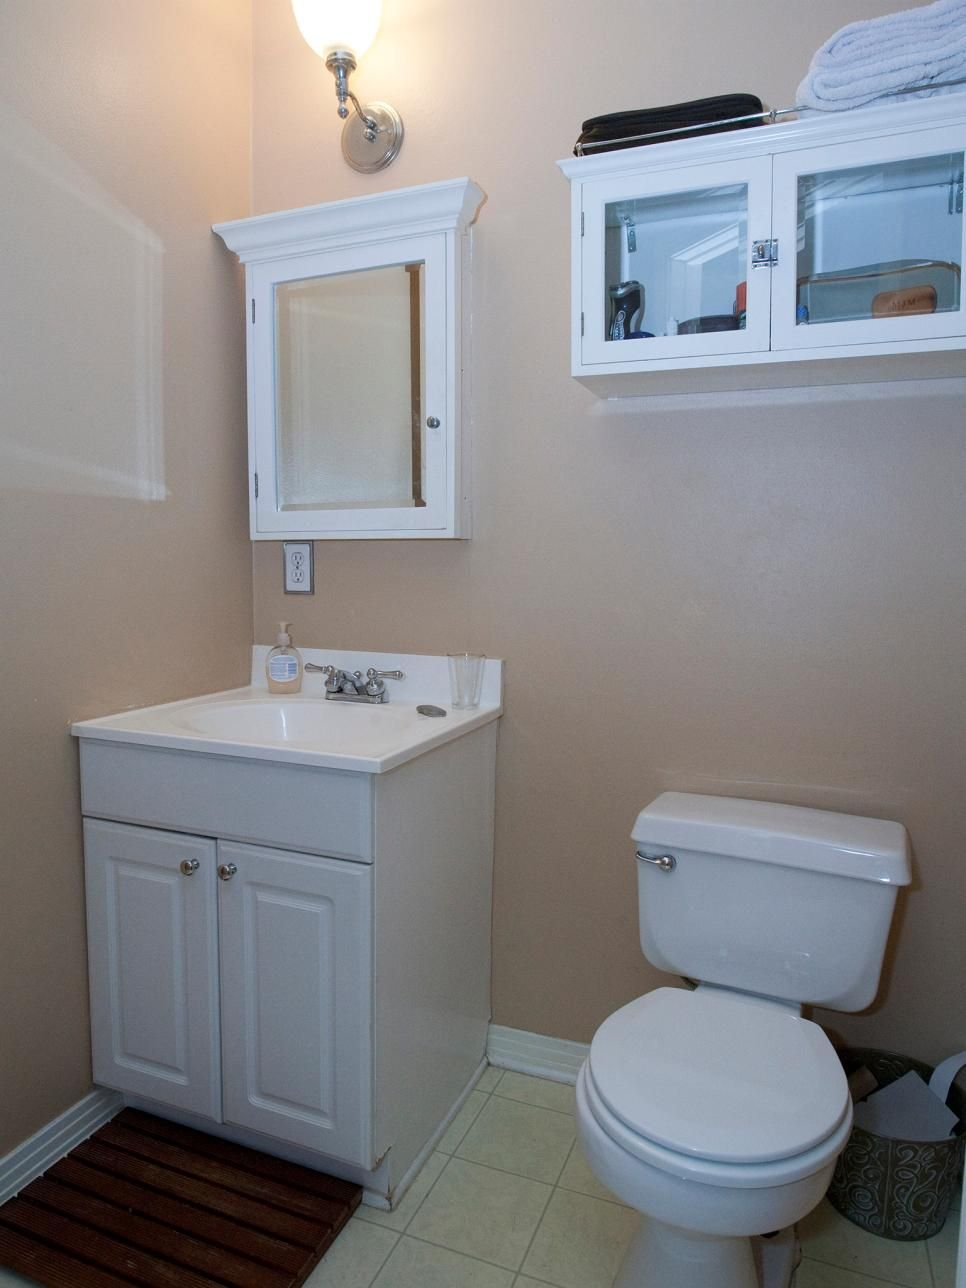 Hgtv Shares Our Favorite Small Bathroom Makeovers From Shows Like Property Brothers And Rehab Addict